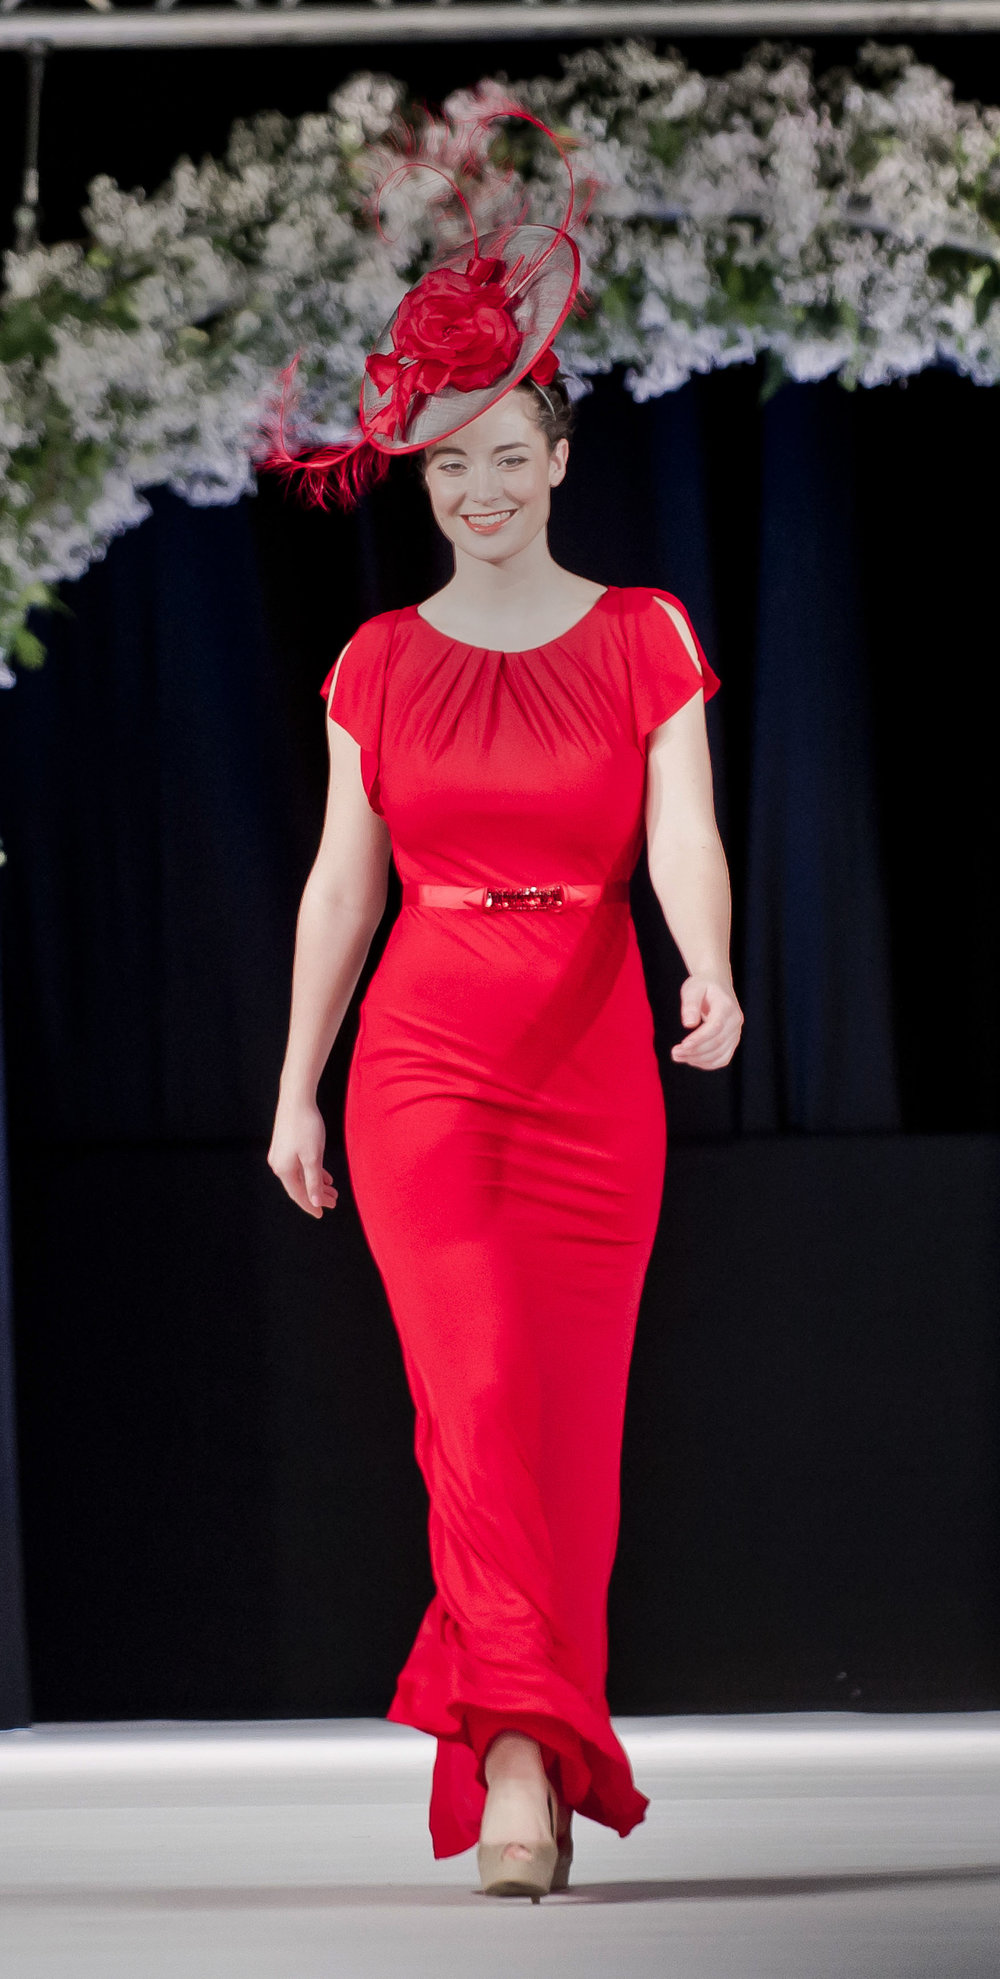 Scottish Wedding Show Catwalk - SECC 2014